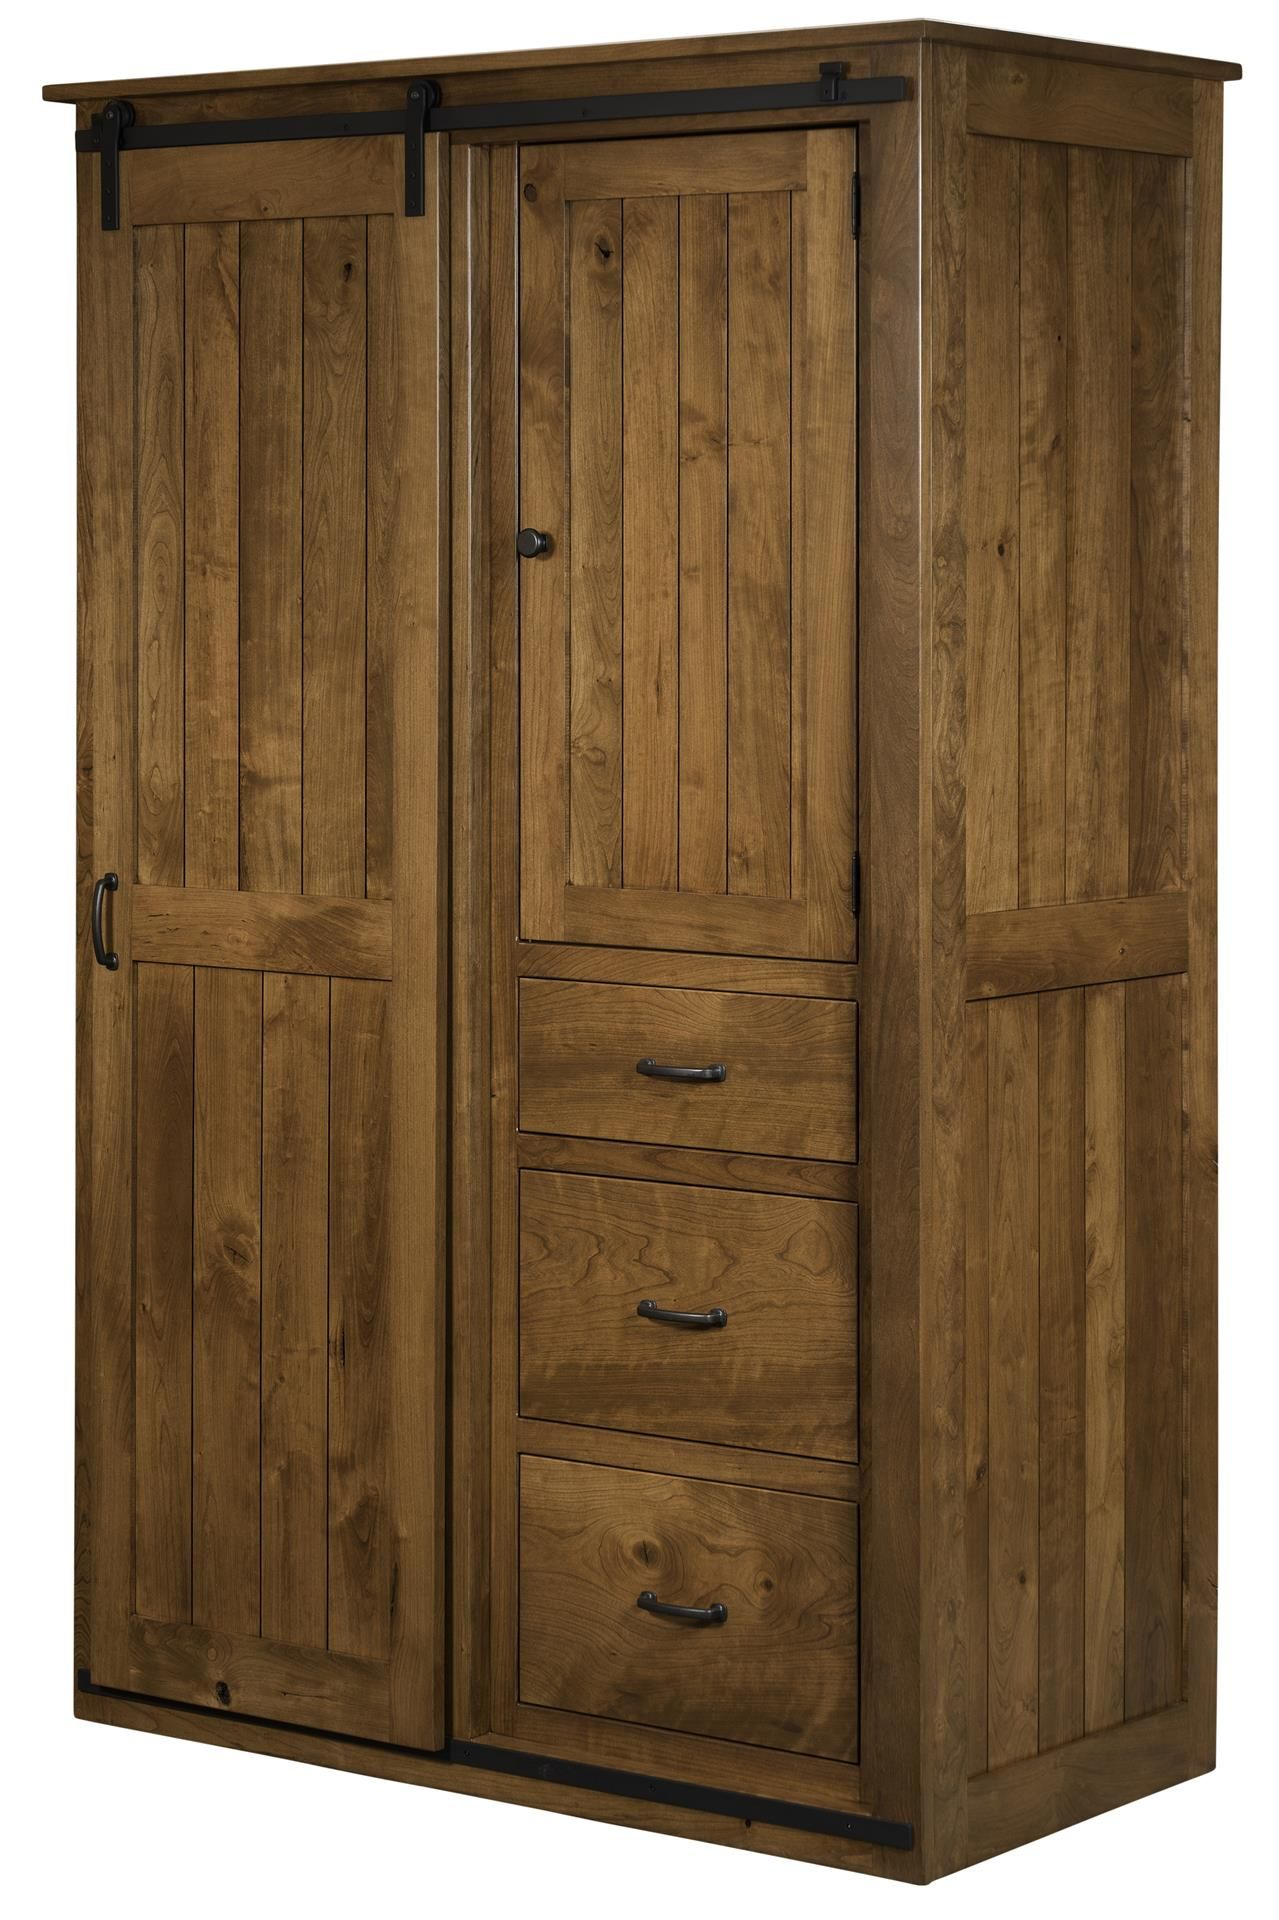 Sliding Barn Door Wardrobe Cabinet There S A Cozy Warmth To The Sliding Barn Door Wardrobe Cabinet Barn Door Cabinet Wardrobe Cabinets Sliding Barn Door Closet